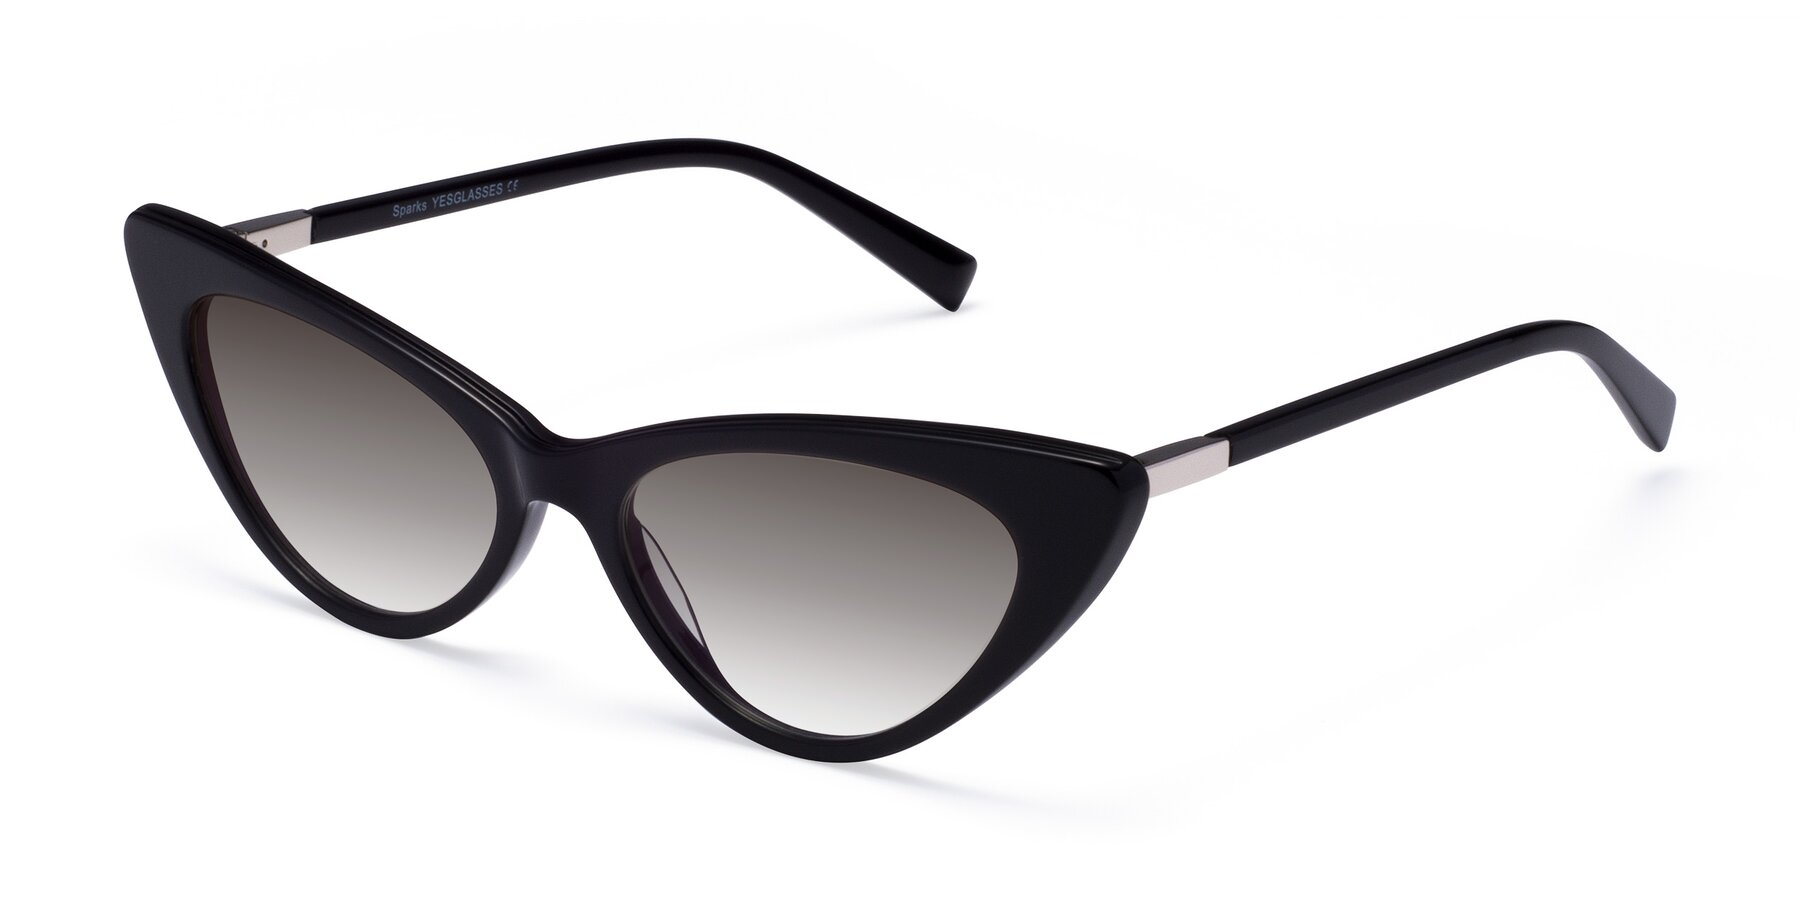 Angle of Sparks in Black with Gray Gradient Lenses